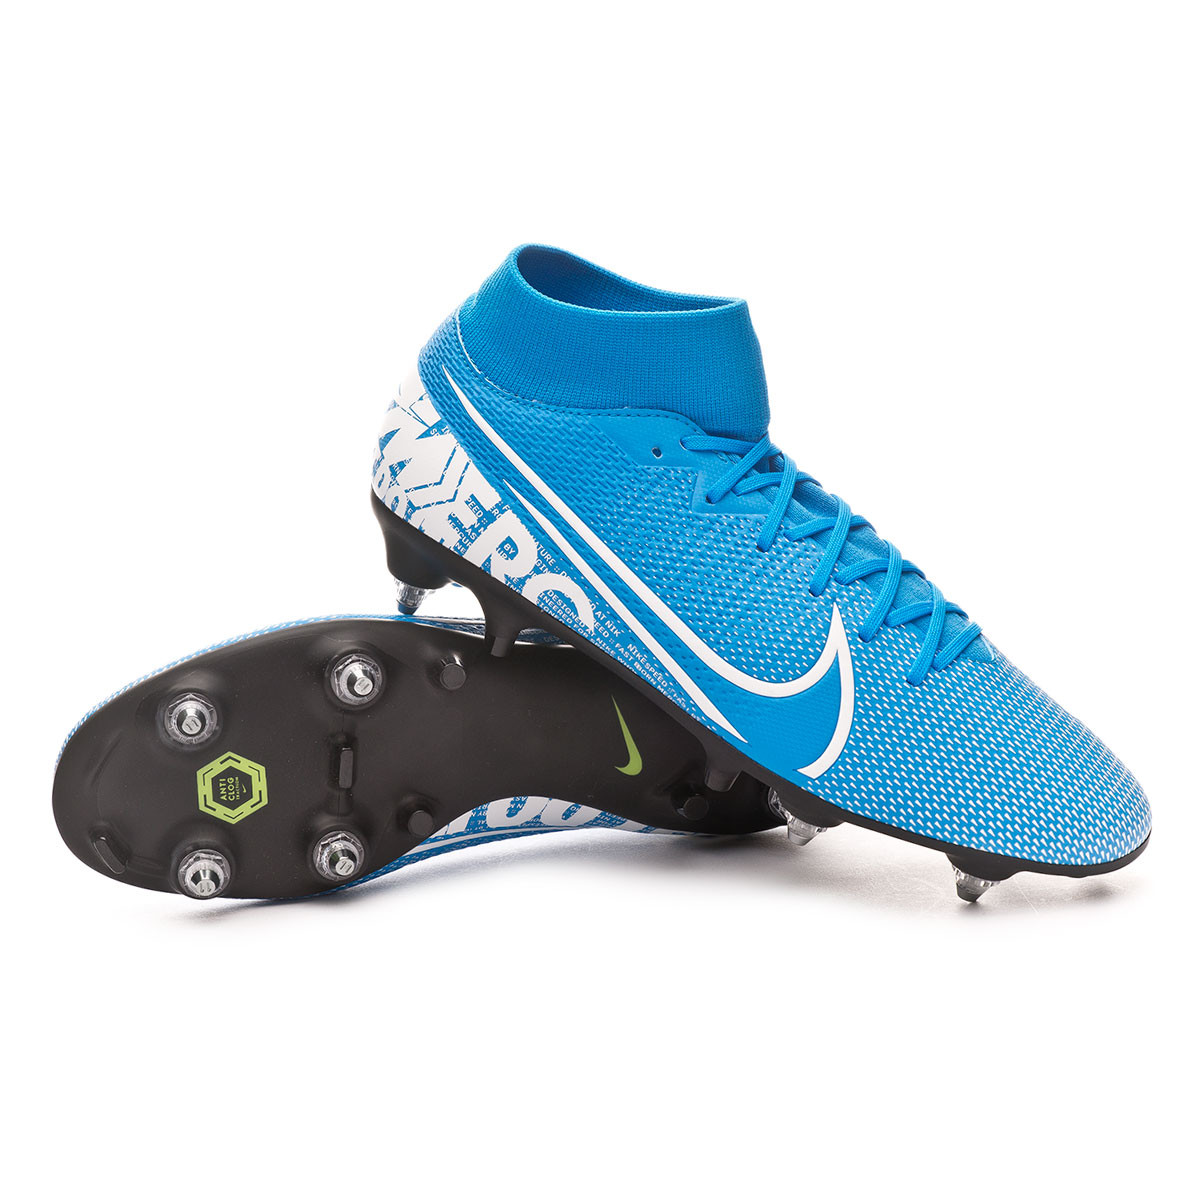 Chaussure de foot Nike Mercurial Superfly VII Academy ACC SG Pro